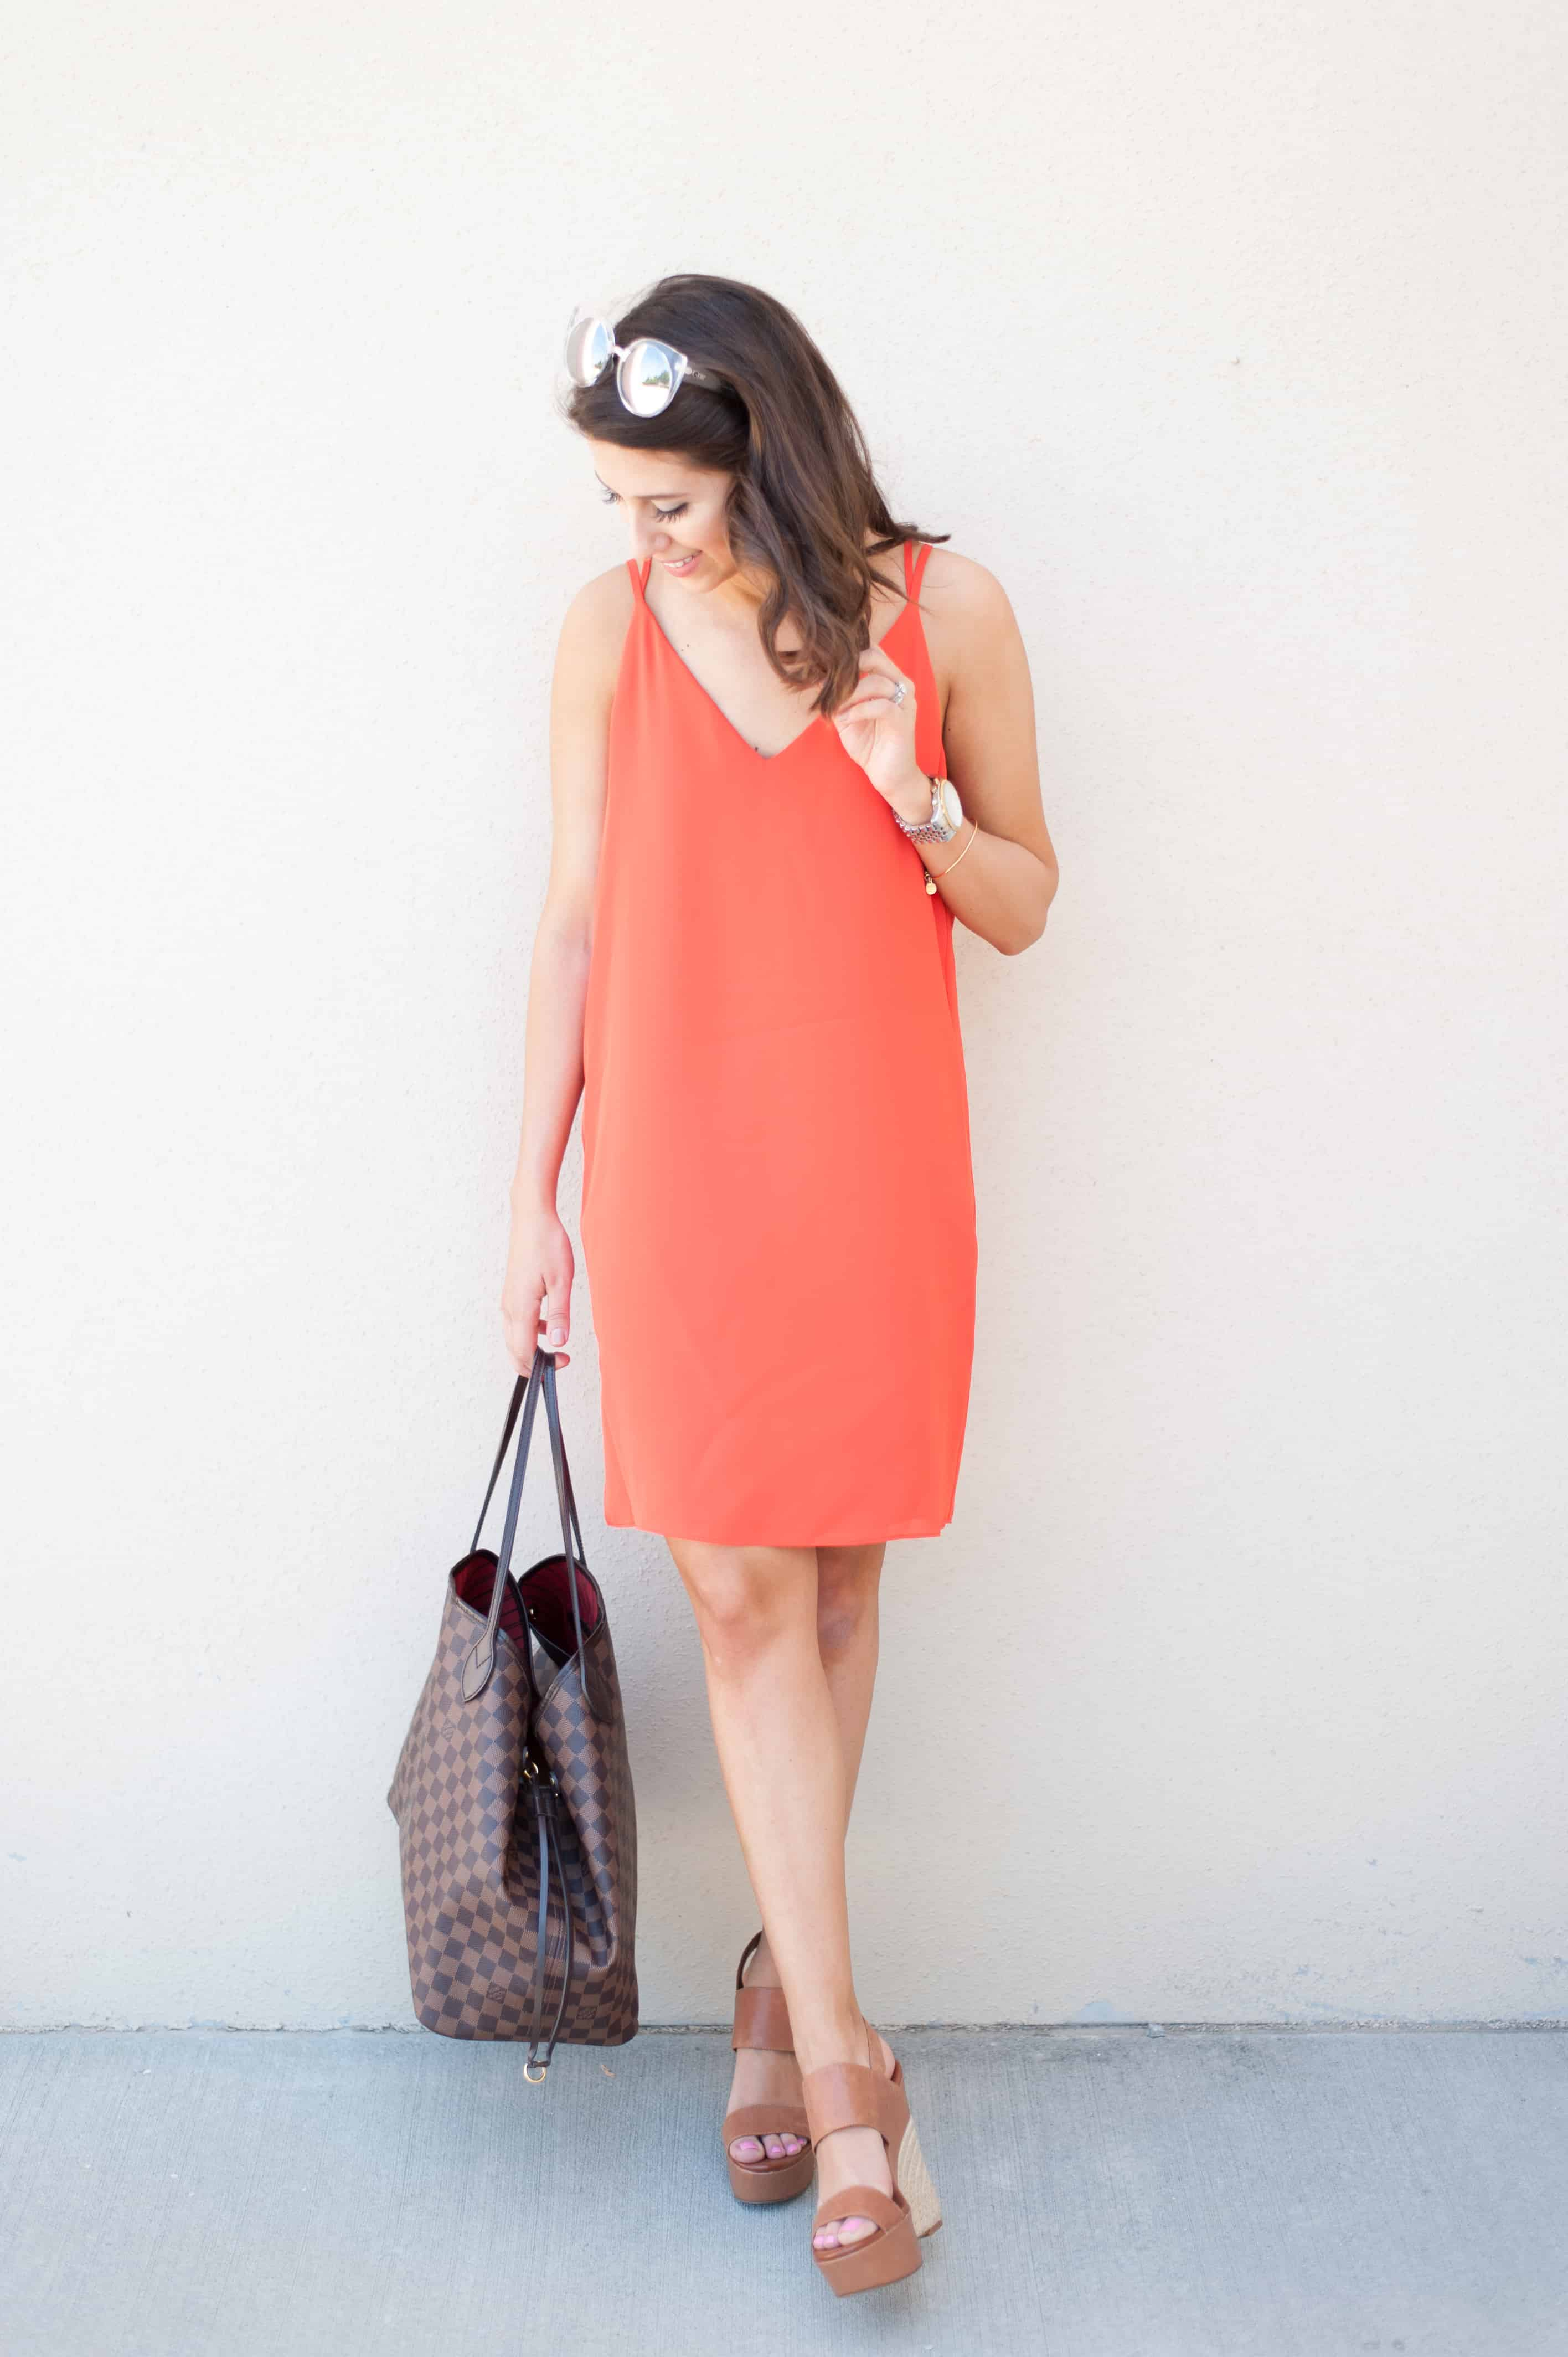 Dress Up Buttercup // A Houston-based fashion and inspiration blog developed to daily inspire your own personal style by Dede Raad | Slip Dress